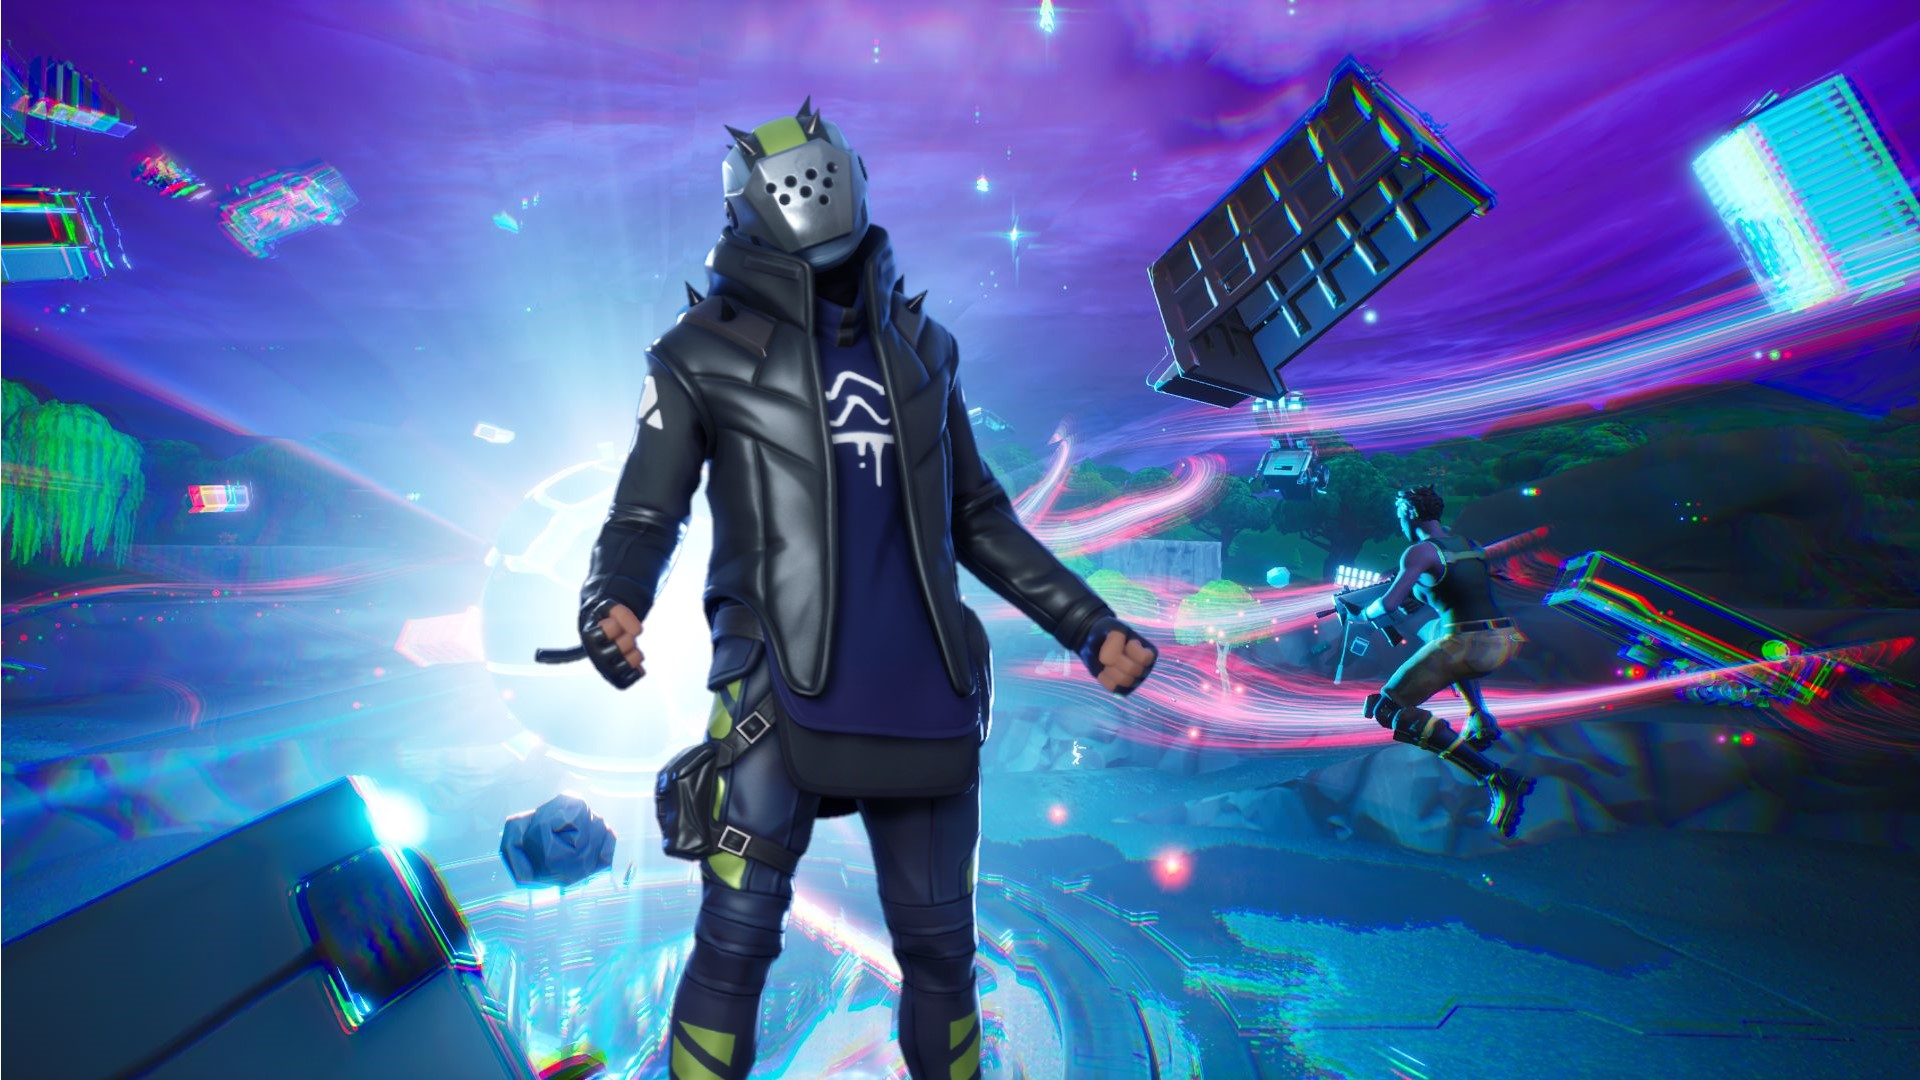 X Lord Fortnite Skin All Details Hq Wallpapers